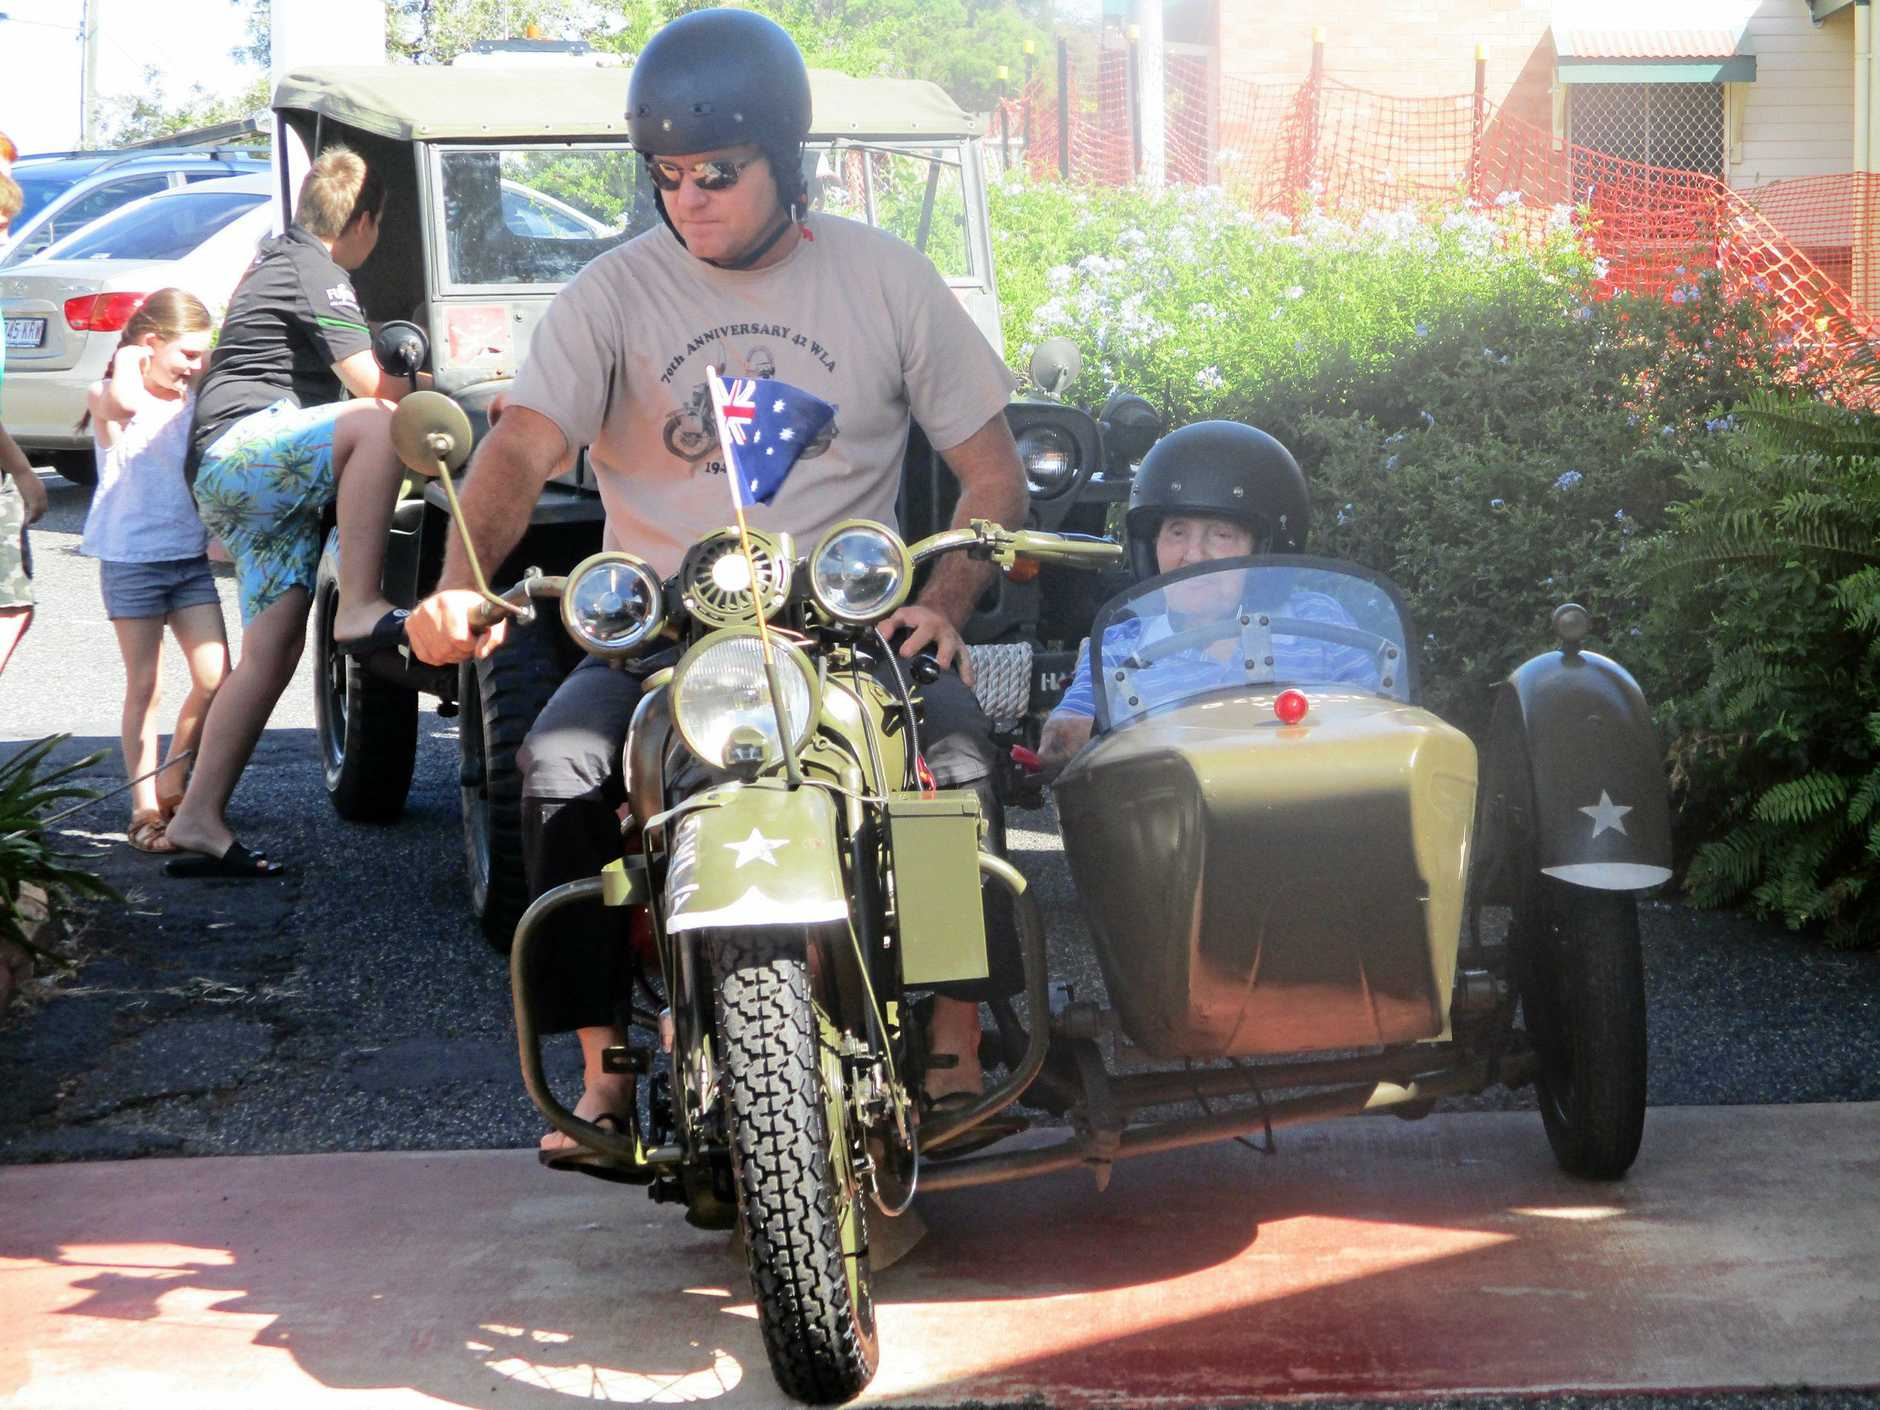 MOTOR'S RUNNING: Mount Morgan resident, Claude McKnight takes a ride in the sidecar of a World War II Harley Davidson army motorcycle as per his wish.